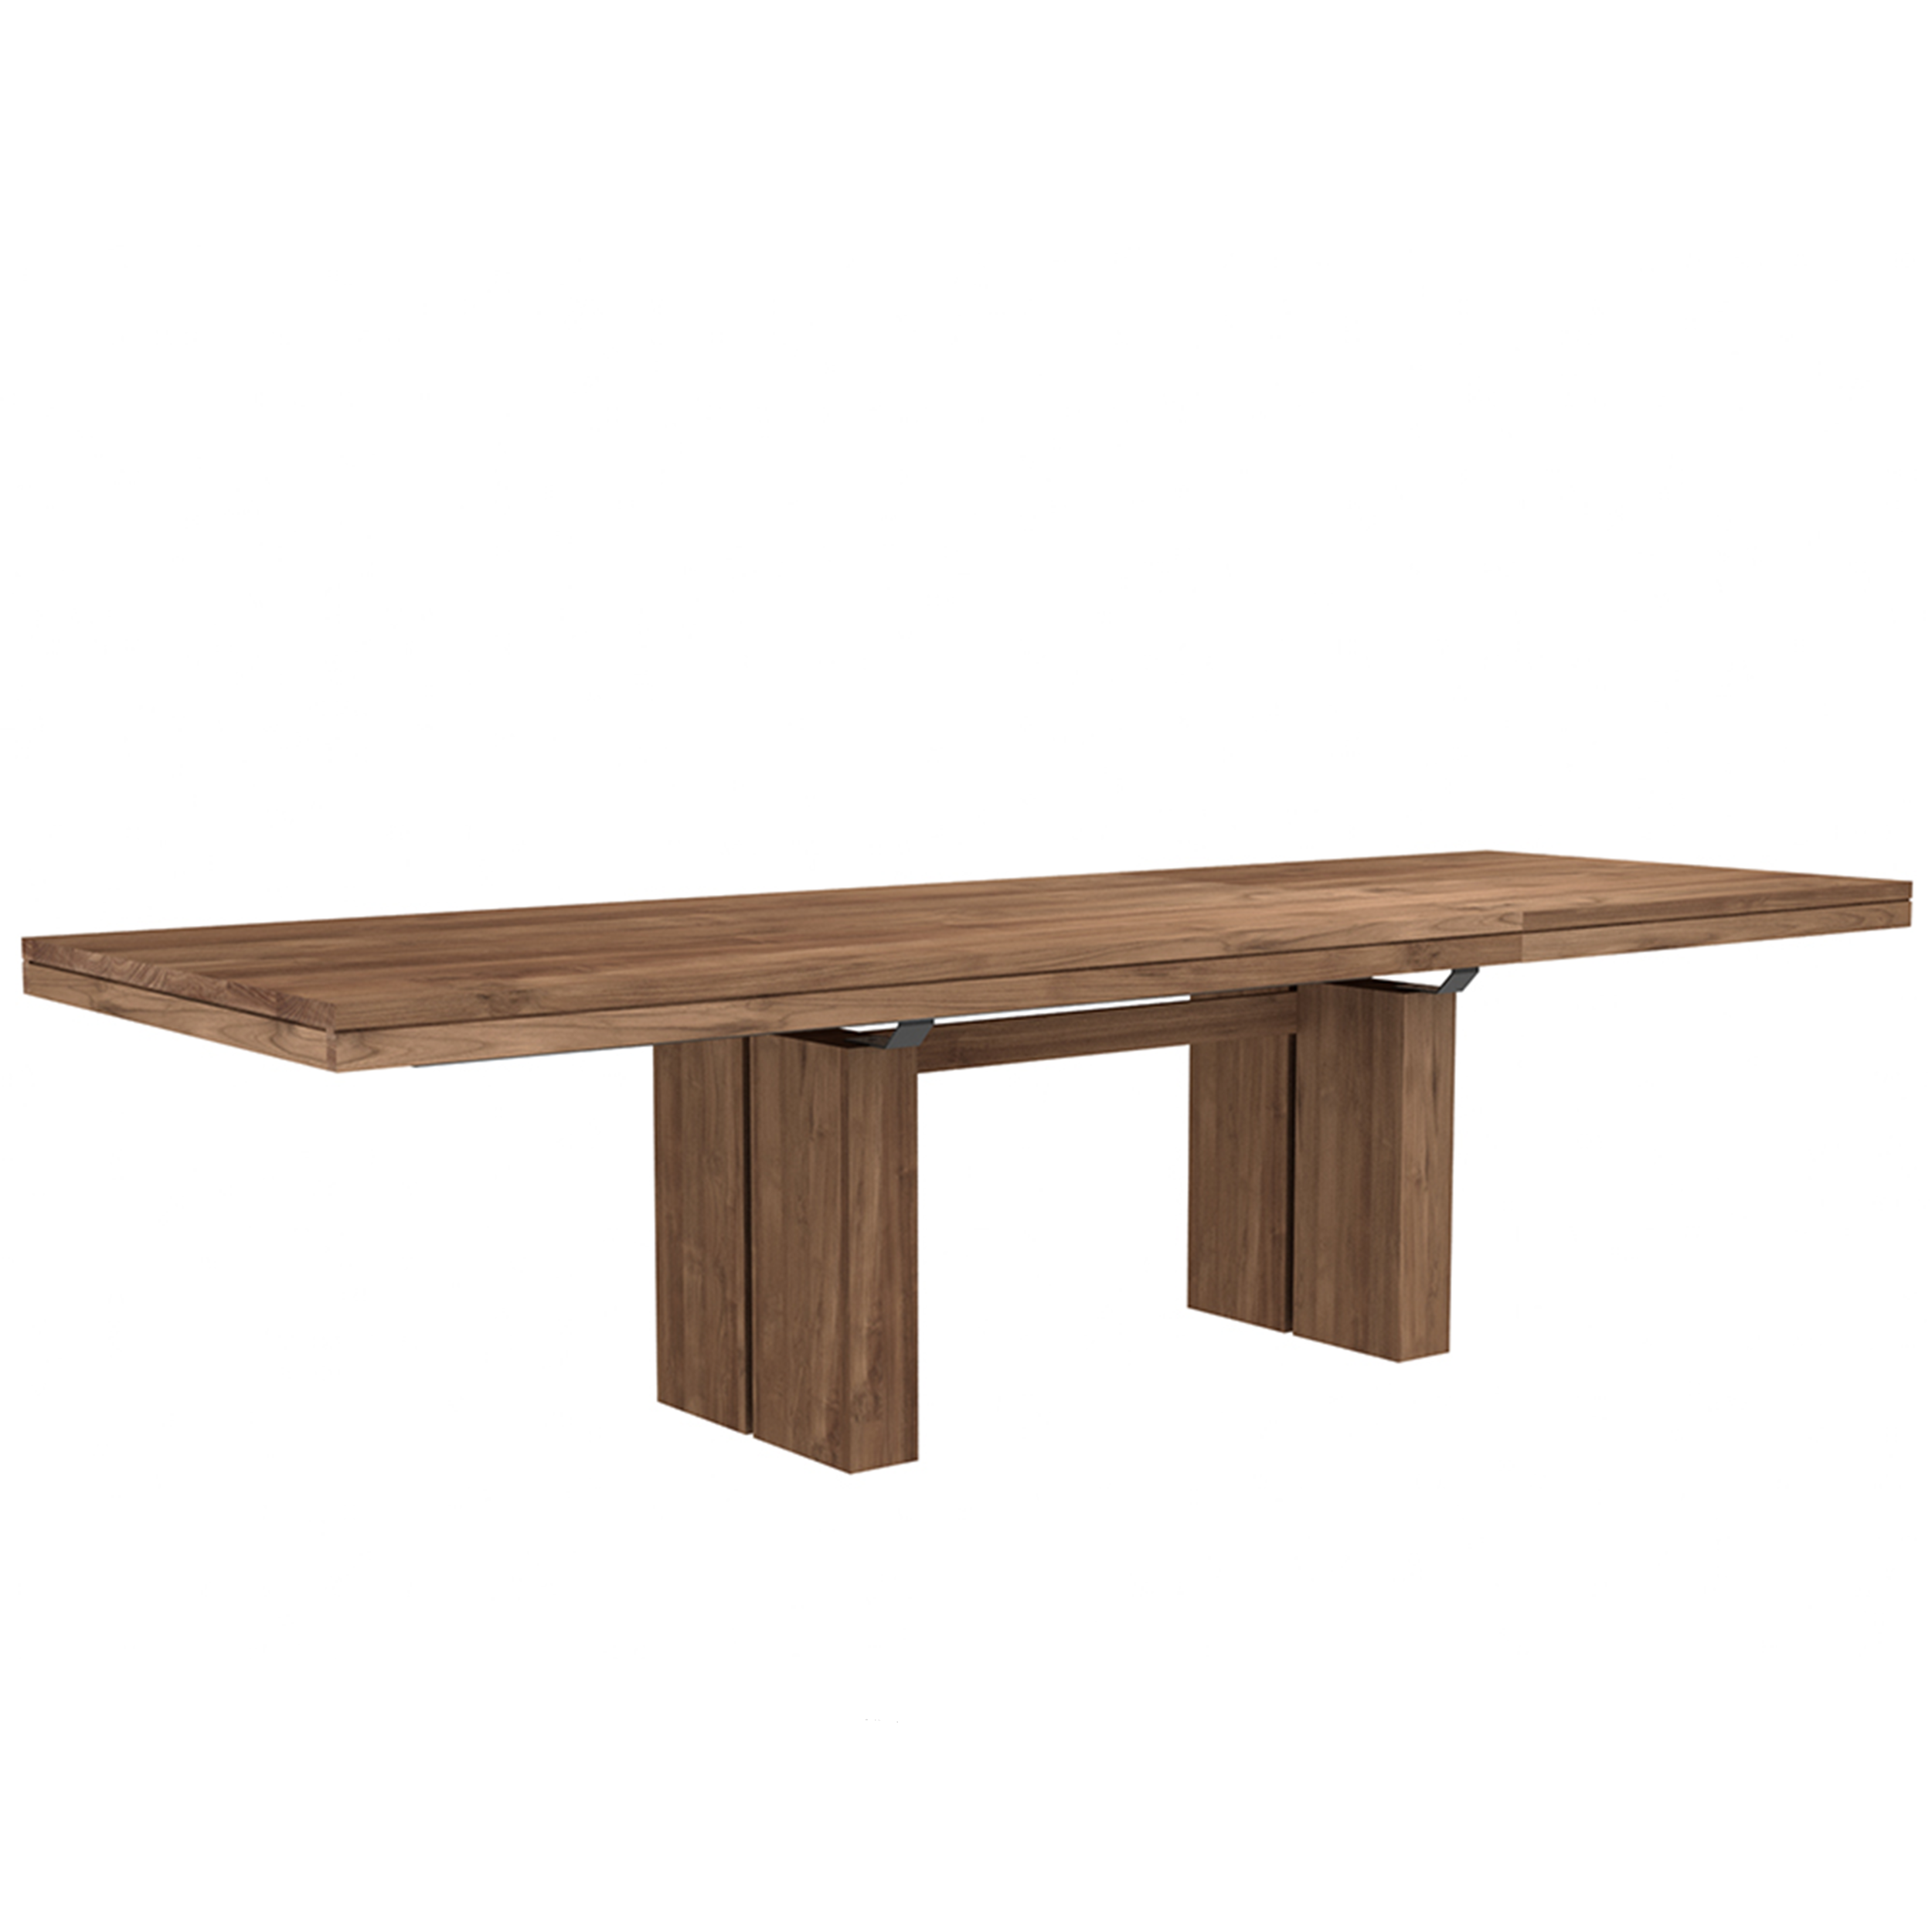 TGE-012066-Teak-Double-extendable-dining-table-200-300x100x76_p-ext.jpg.png